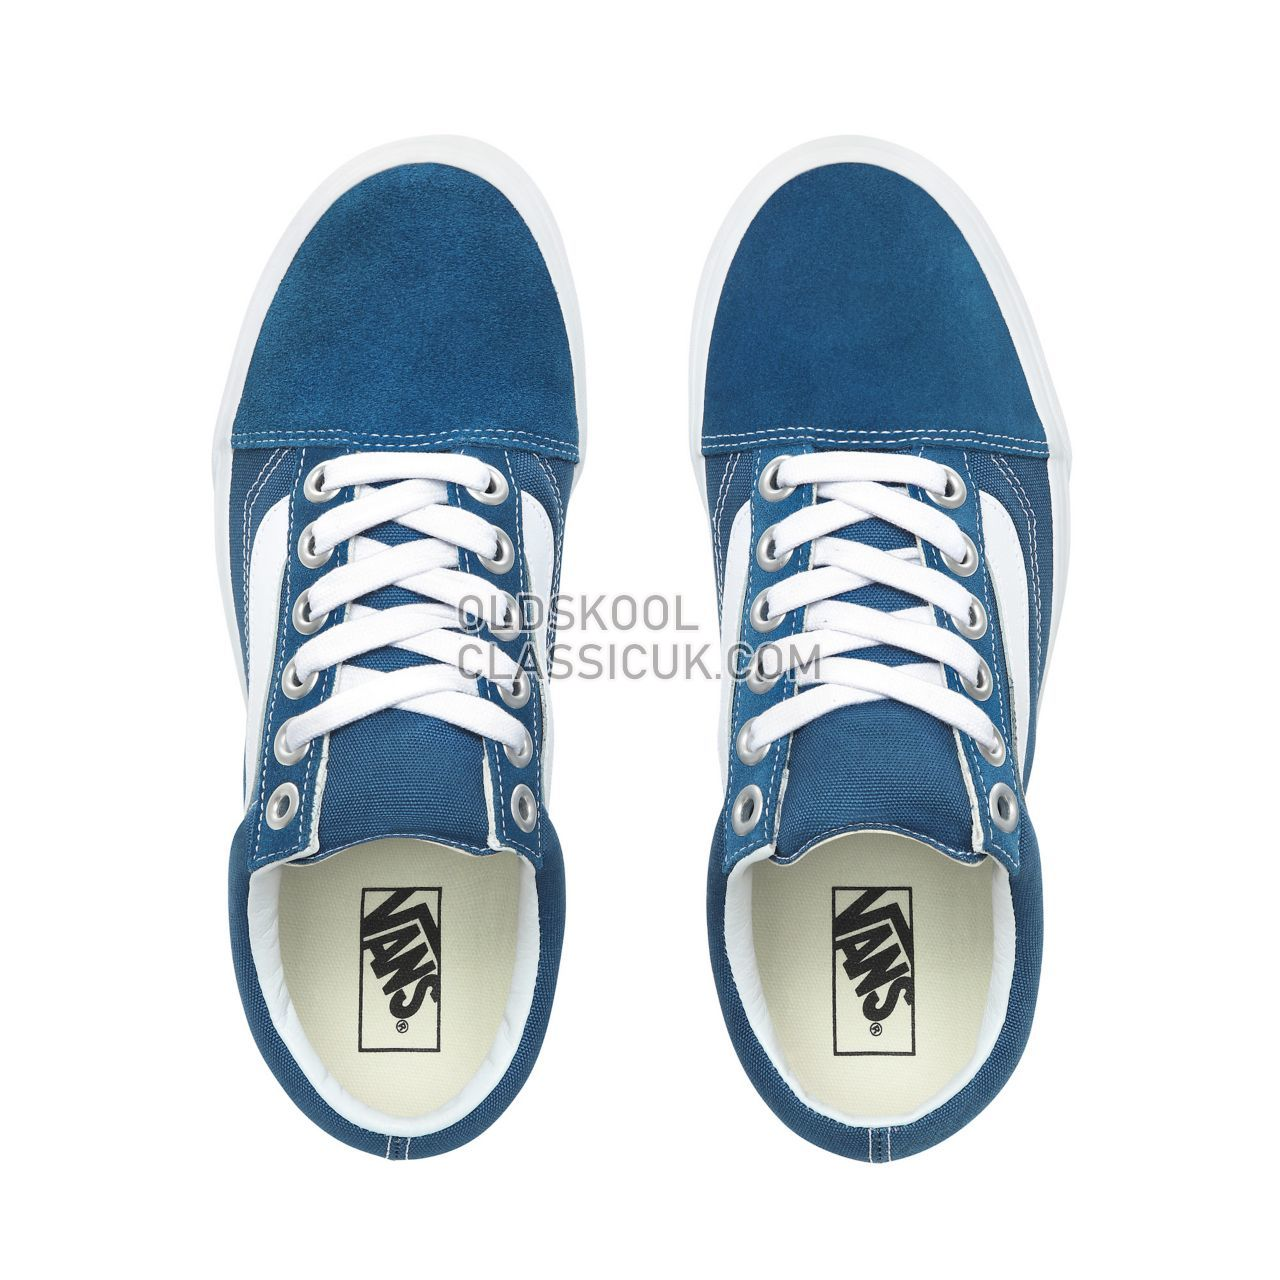 Vans Old Skool OS Sneakers Mens Womens Unisex Sailor Blue/True White VN0A3WLYVS1 Shoes